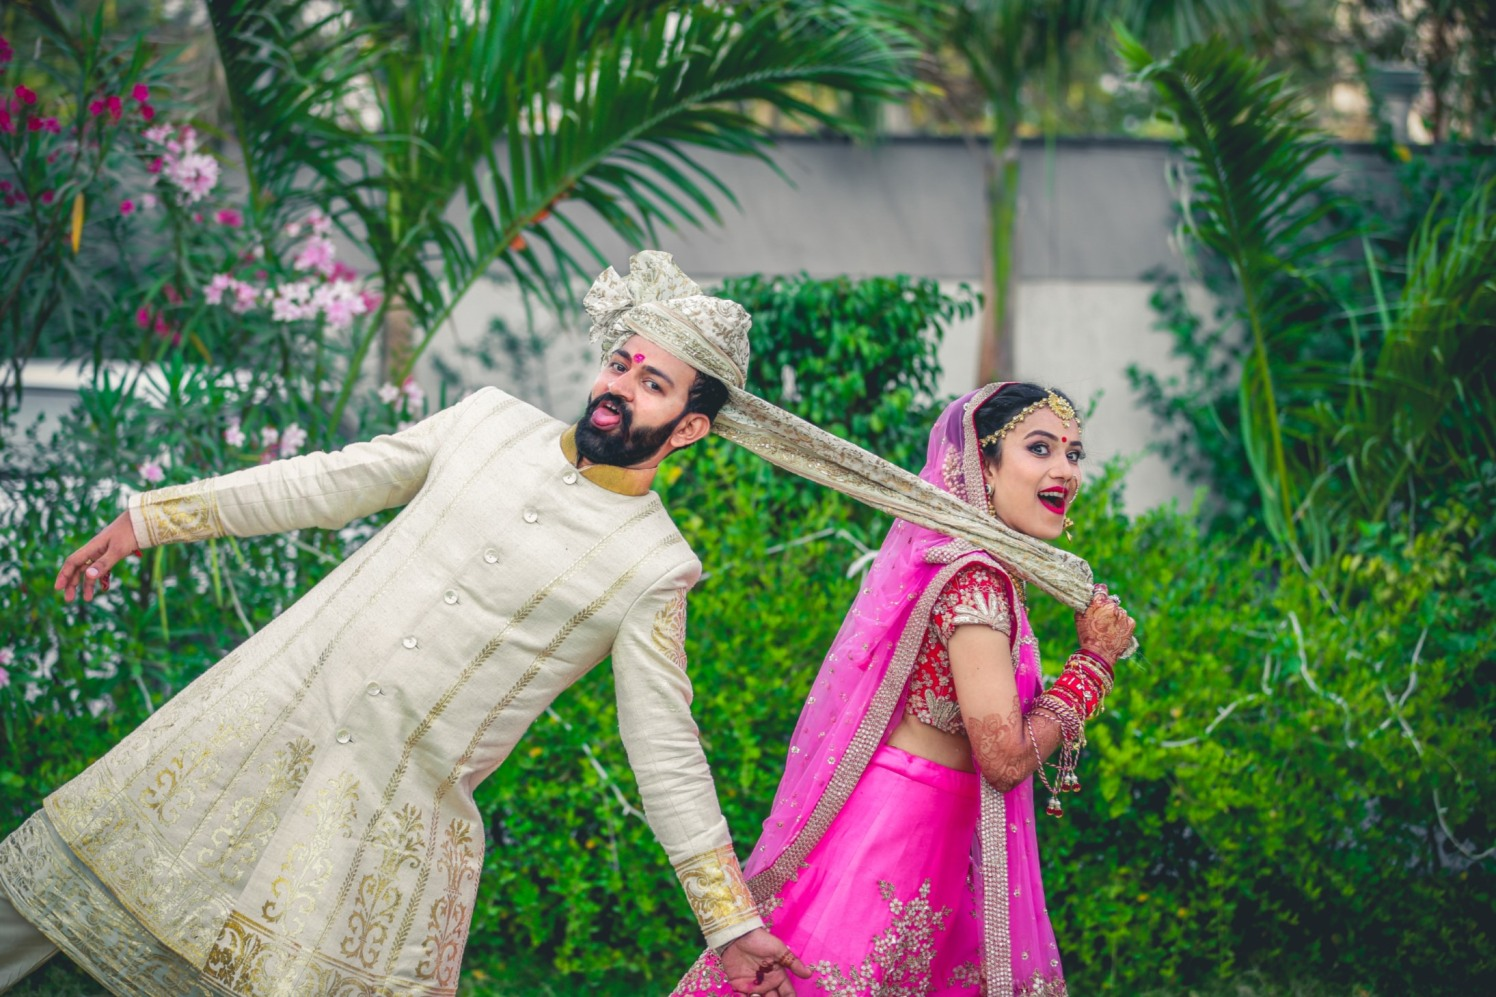 Groom Wearing White Sherwani With Golden Borders by Aniket Kanitkar Wedding-photography | Weddings Photos & Ideas